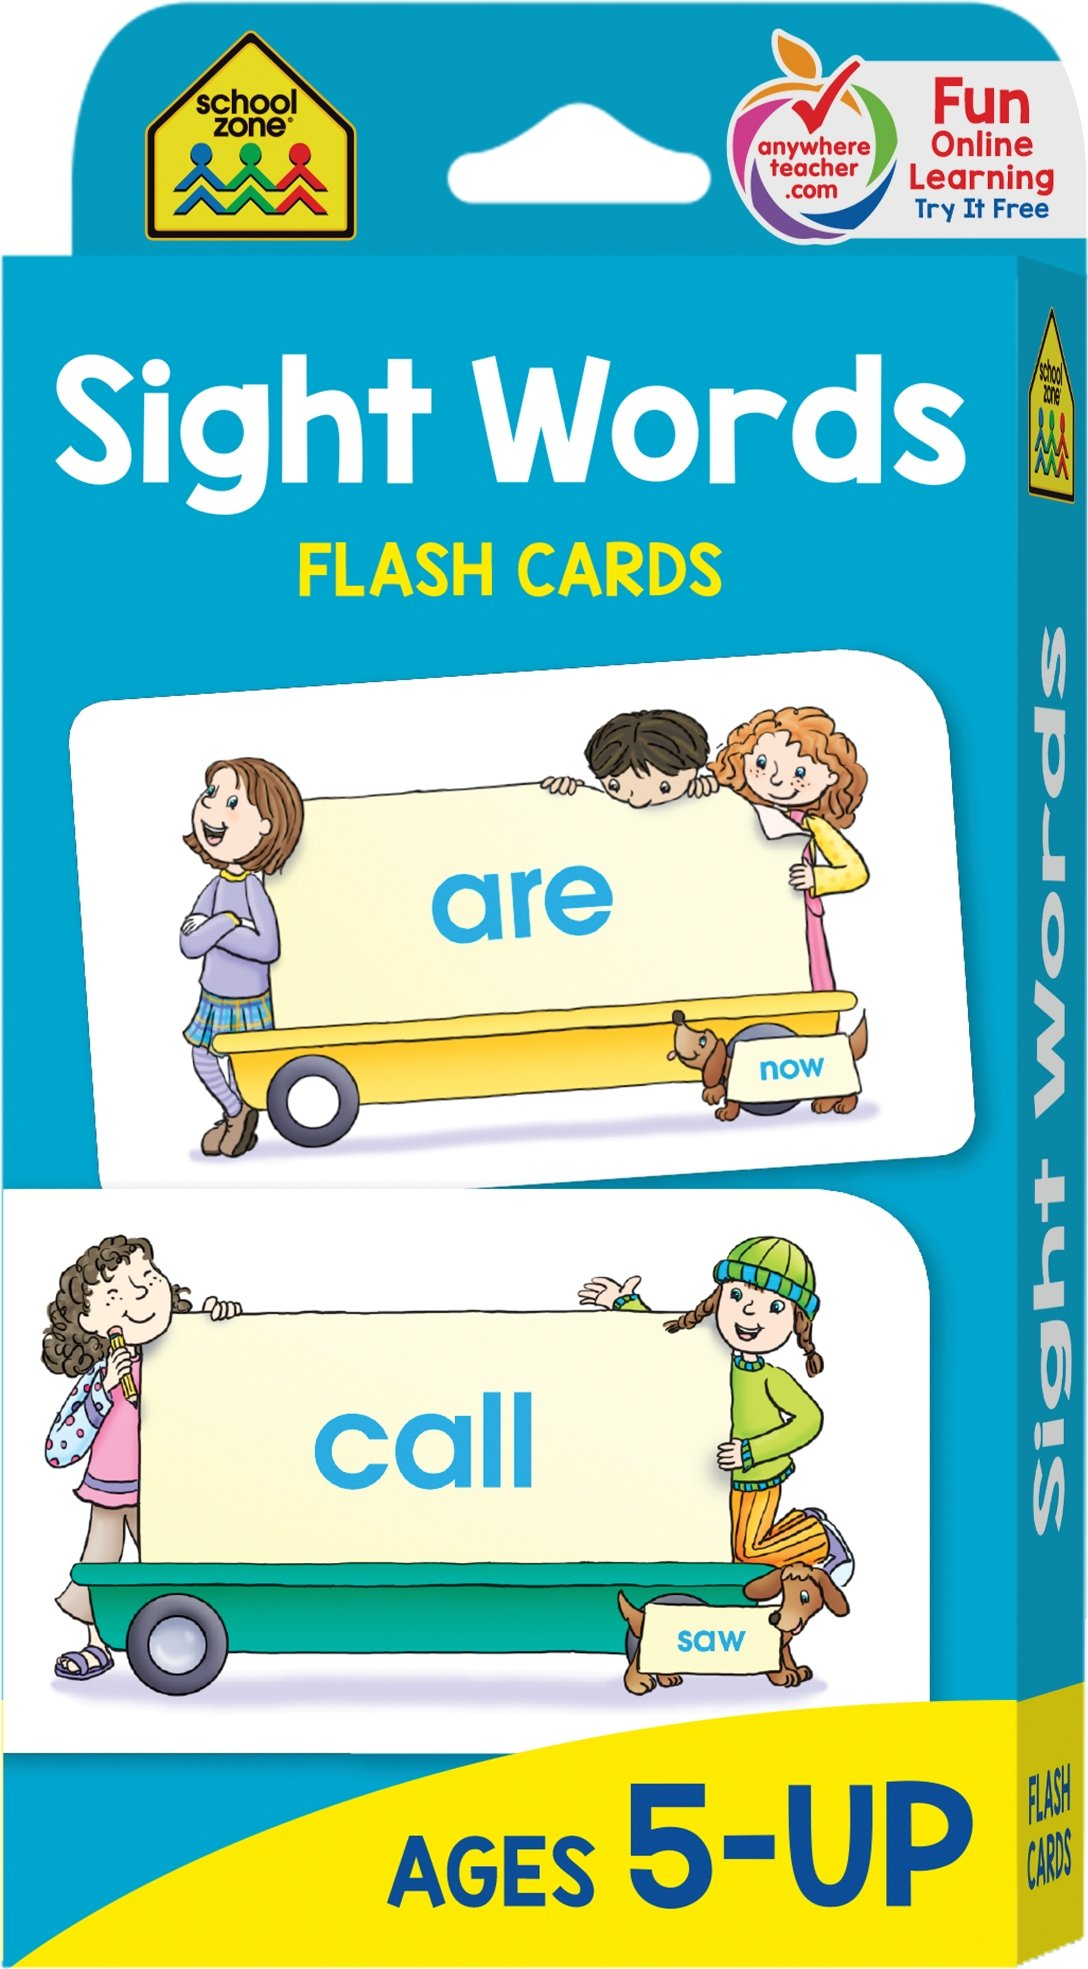 School Zone - Sight Words Flash Cards - Ages 5 and Up